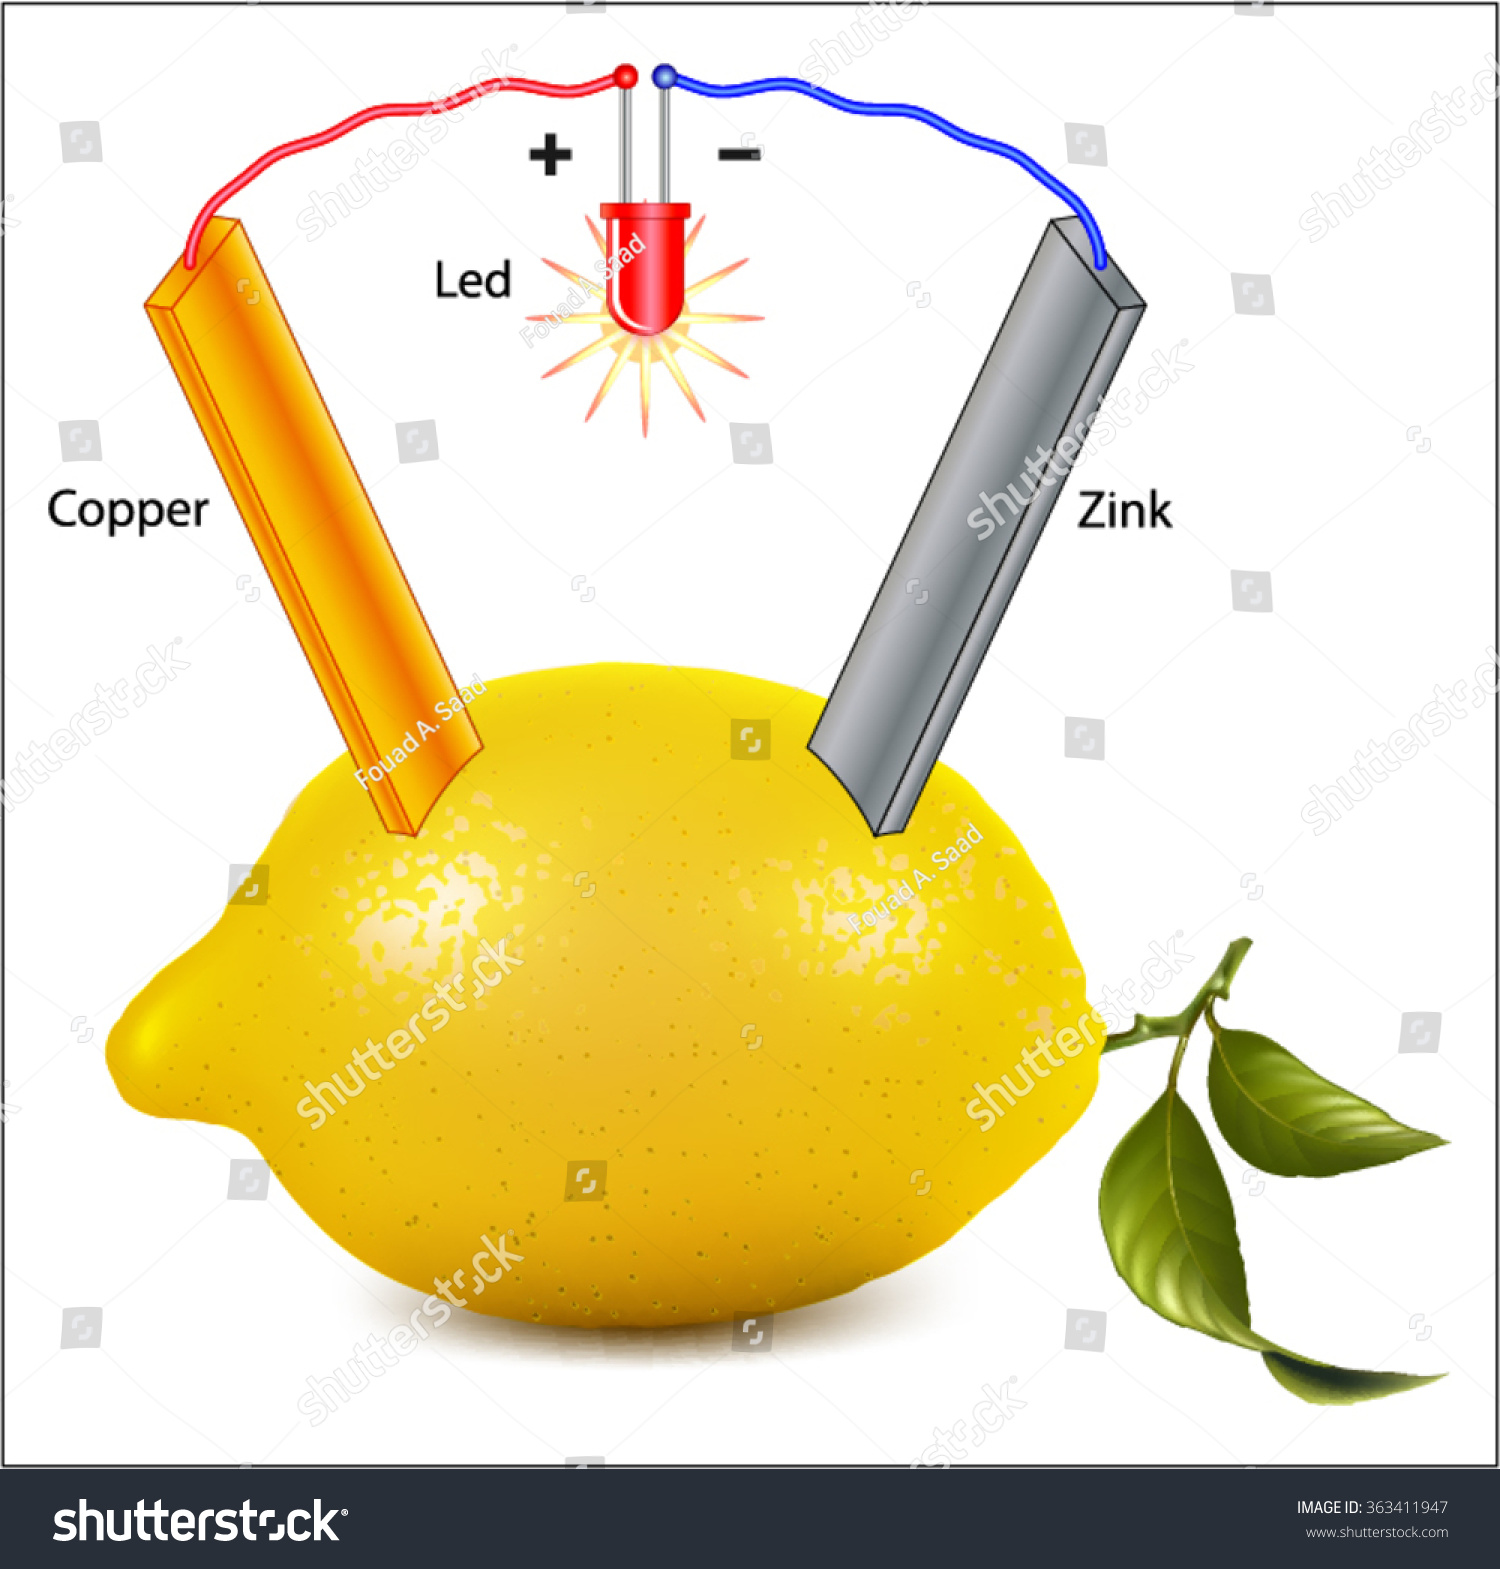 Lemon Battery Diagram Wiring Diagrams Source Potato How To Make A Electricity Stock Vector Royalty Free 363411947 Science Fair